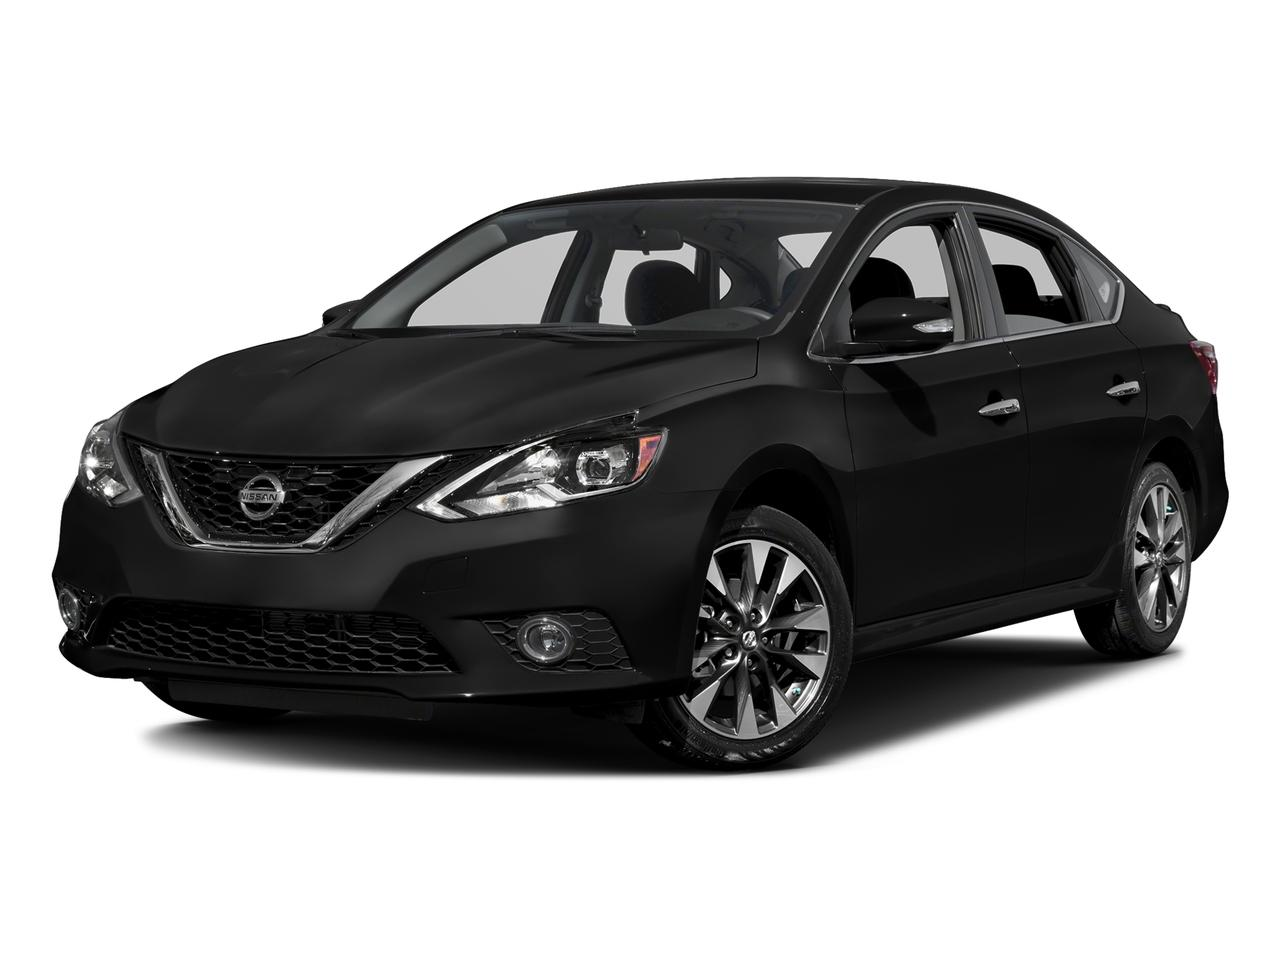 2017 Nissan Sentra Vehicle Photo in San Antonio, TX 78257